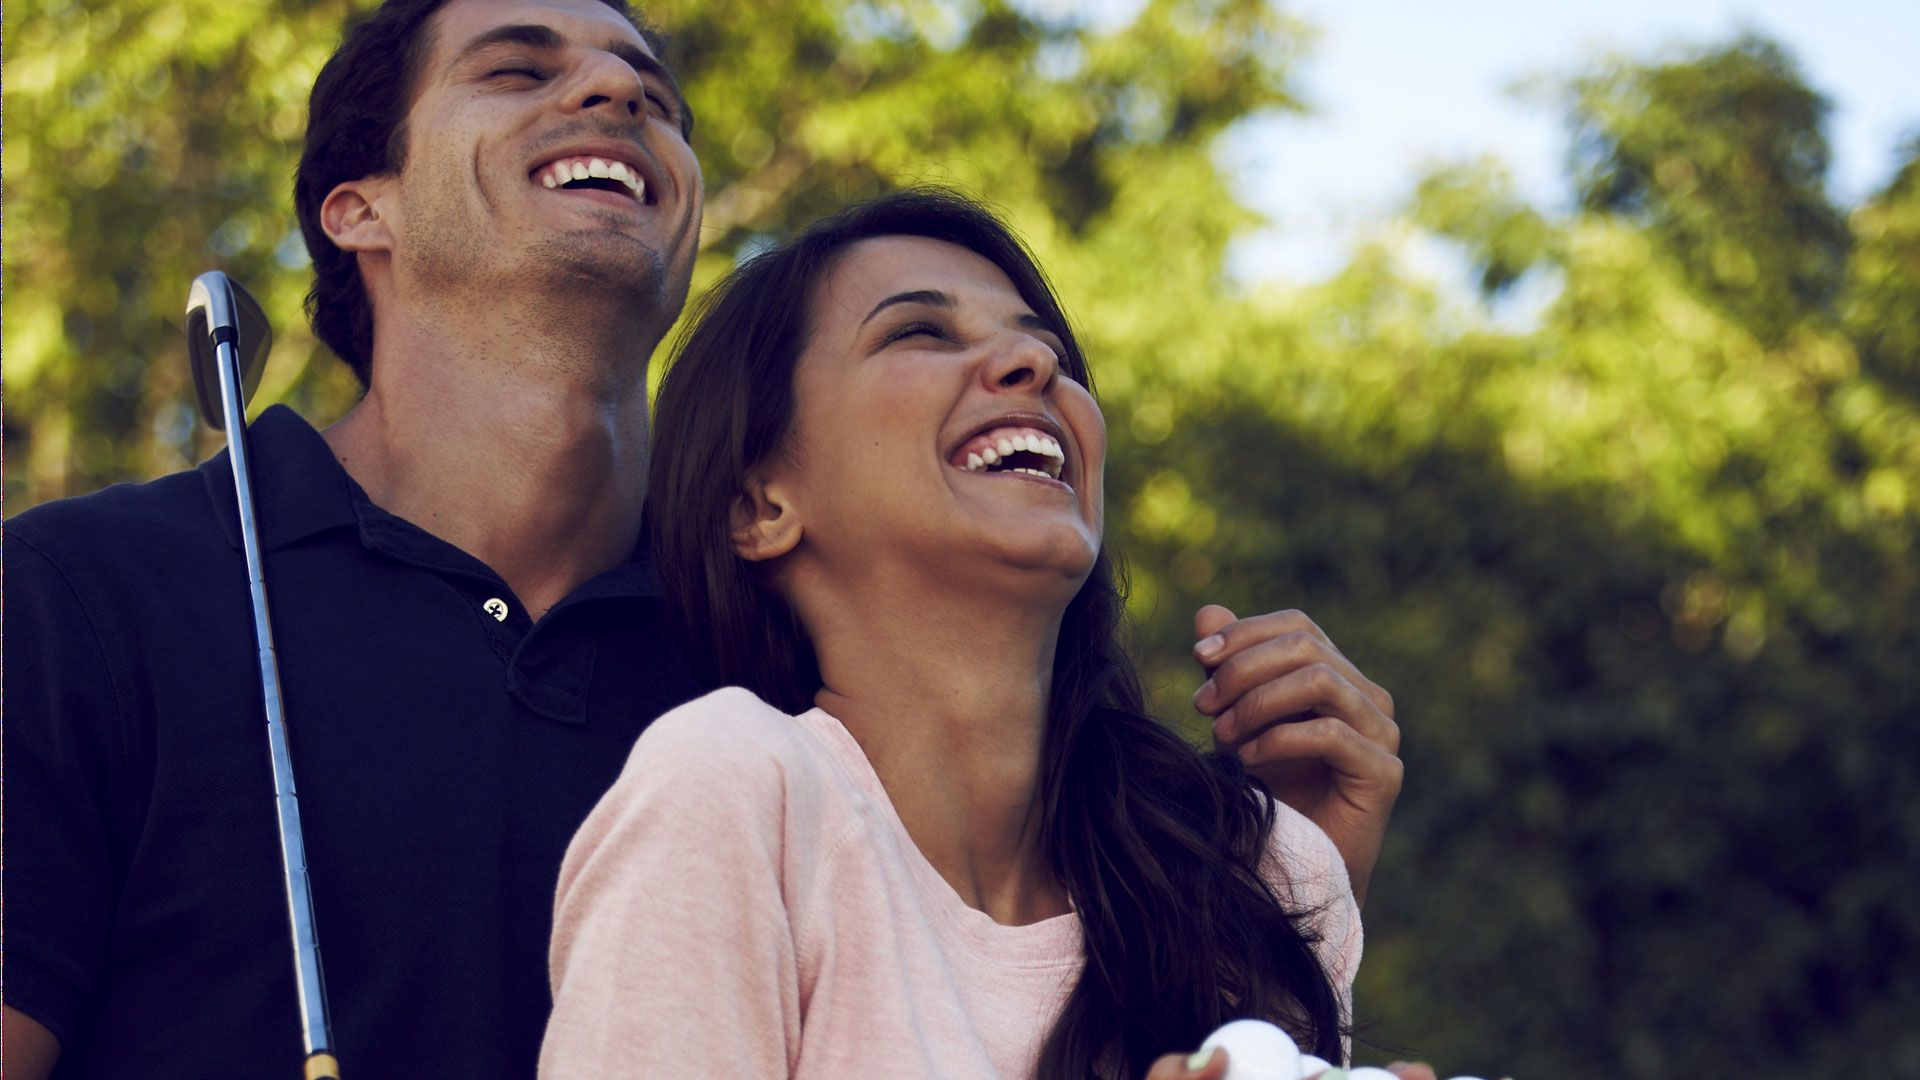 Difference between hookup and regular outing